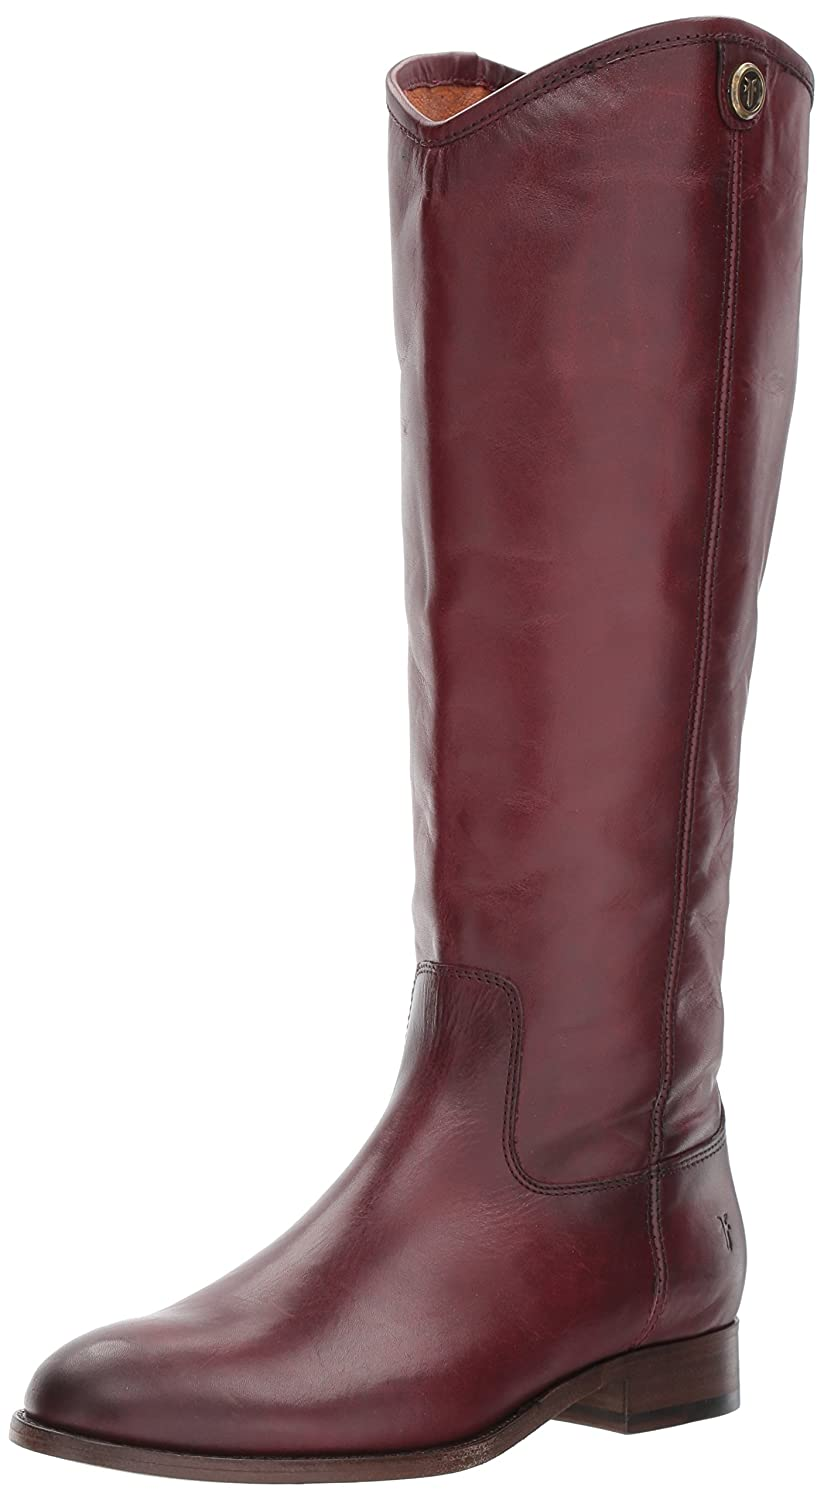 FRYE Women's Melissa Button 2 Extended Calf Riding Boot B06VSJVTZB 5.5 B(M) US|Wine Extended Calf